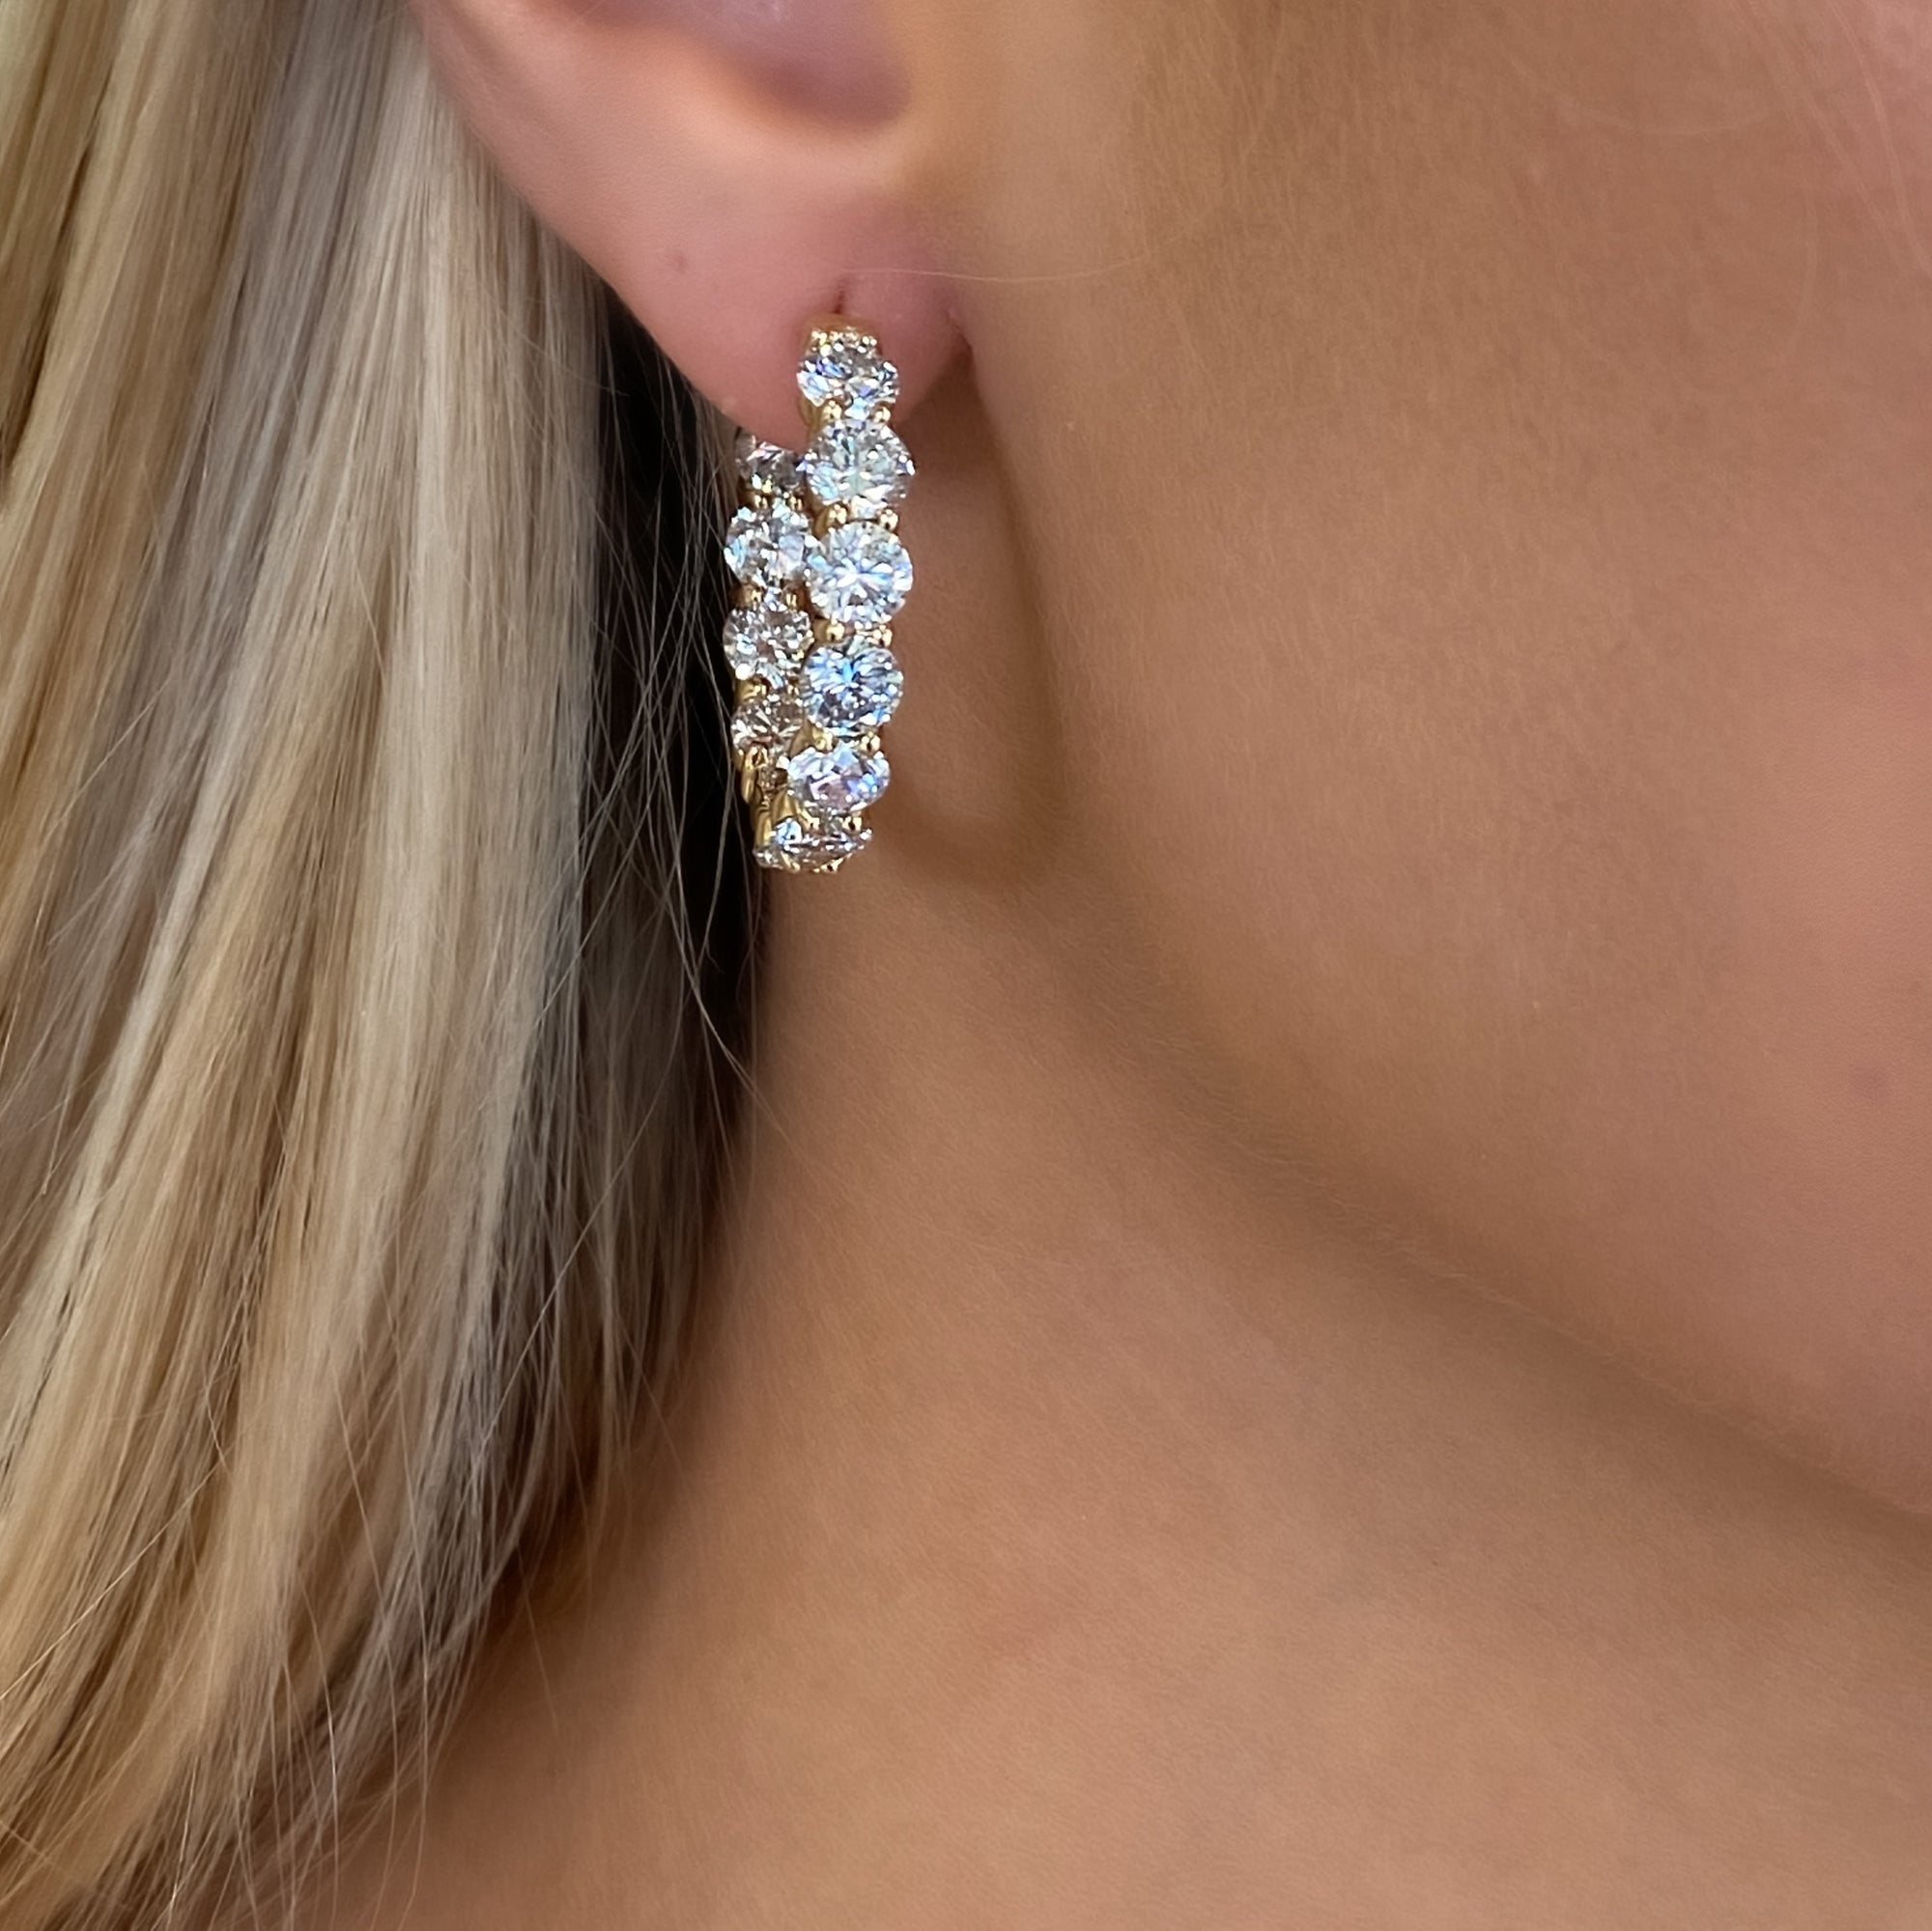 Inside-Out Large Diamond Hoop Earrings in Yellow Gold - Talisman Collection Fine Jewelers